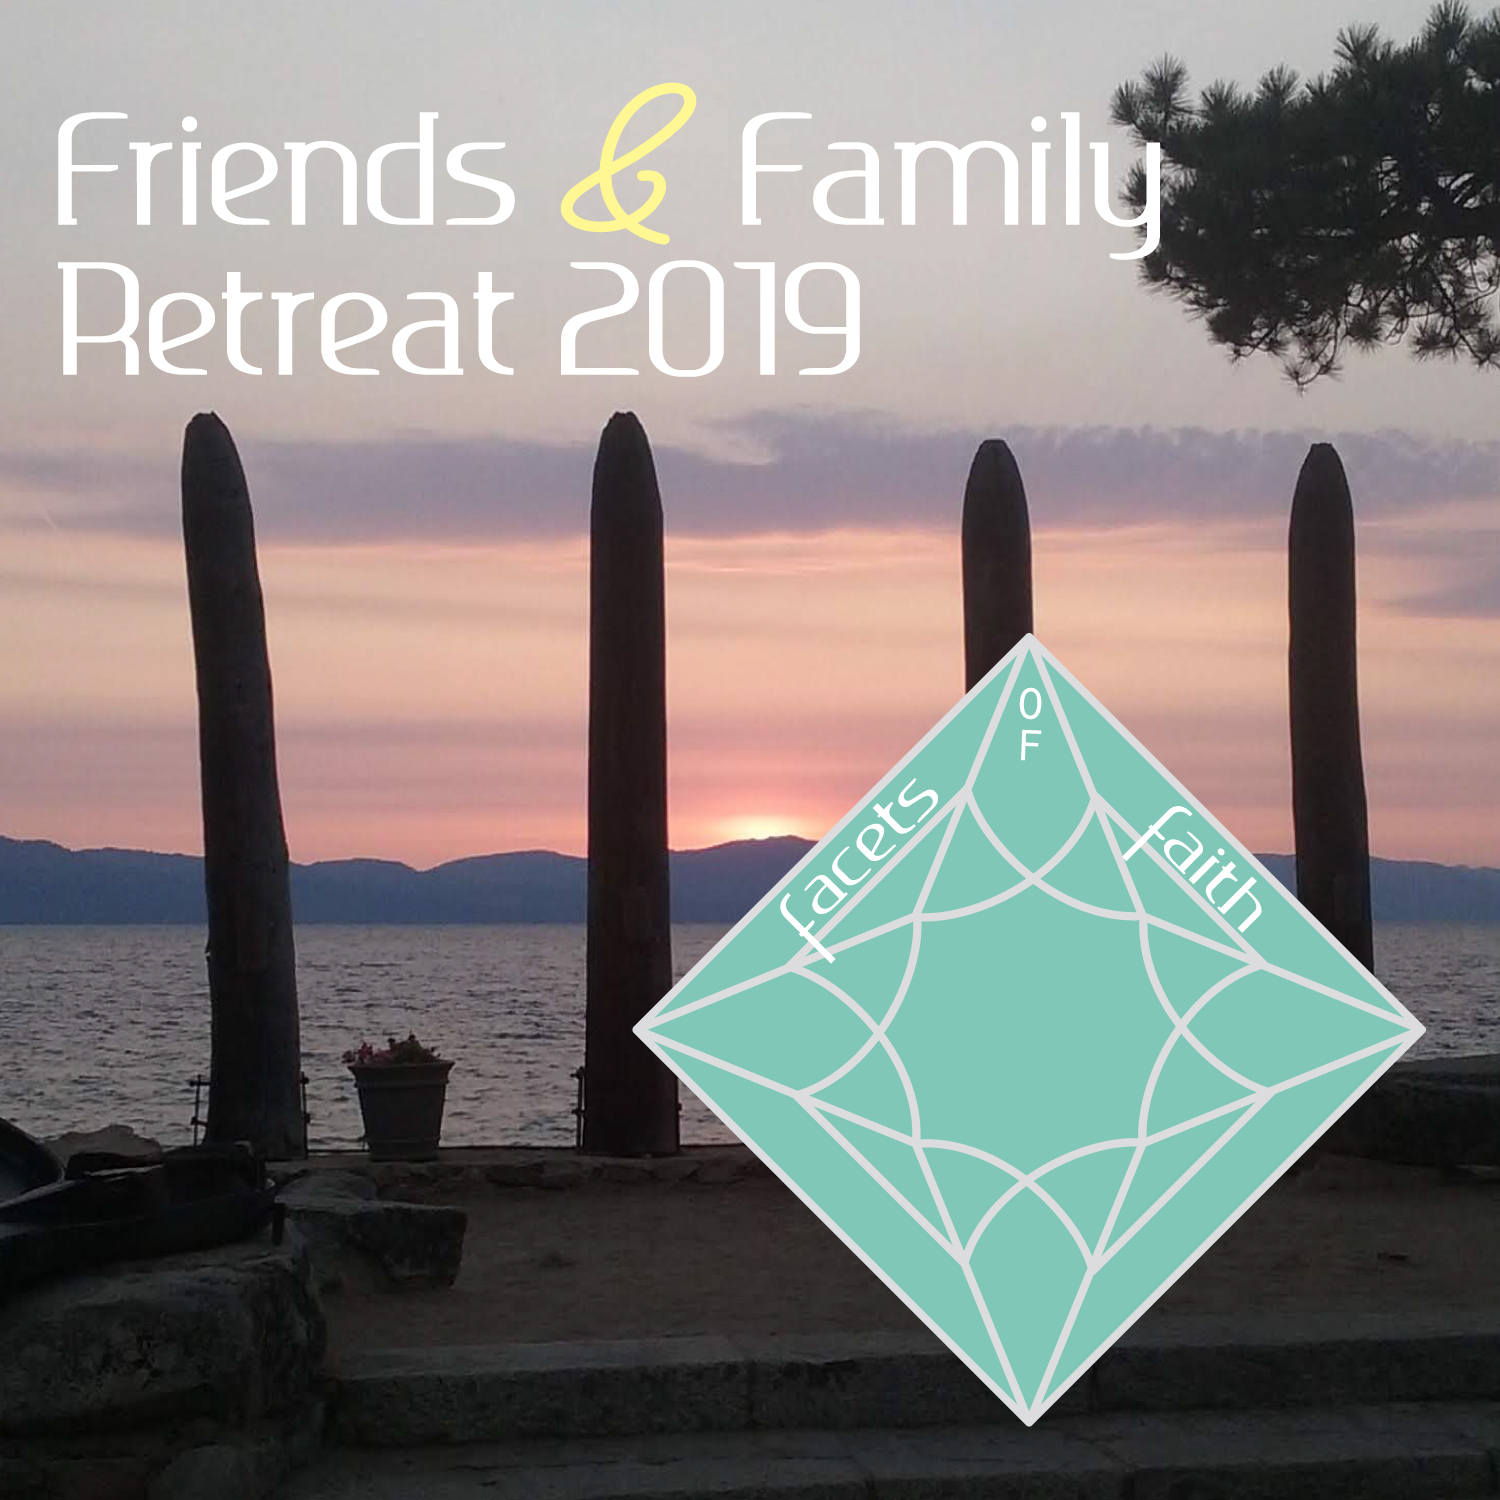 retreat-2019-image-for-website.jpg